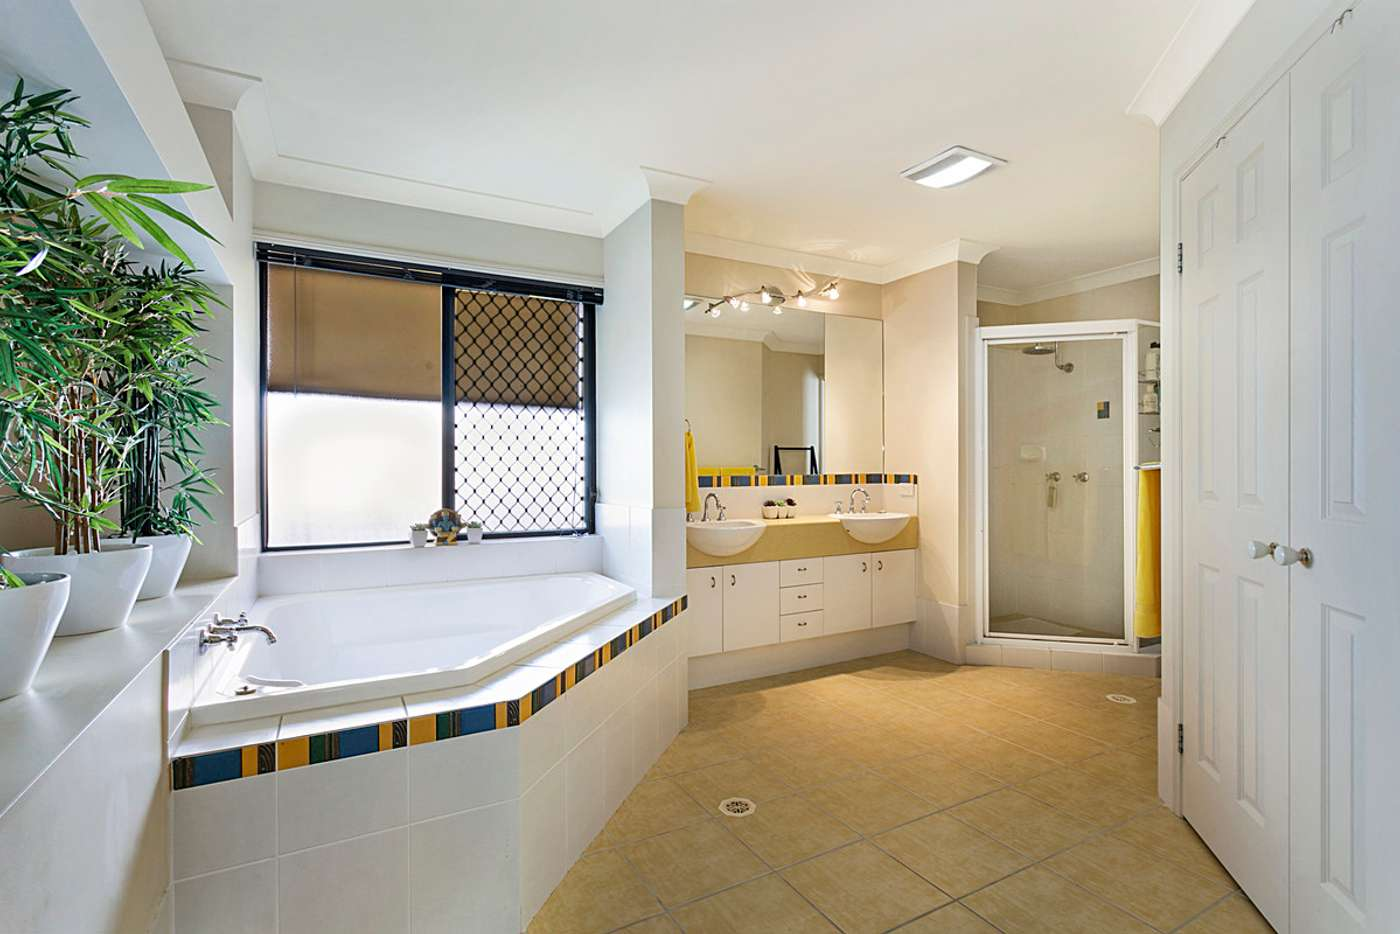 Sixth view of Homely house listing, 22 Barklya Crescent, Sinnamon Park QLD 4073